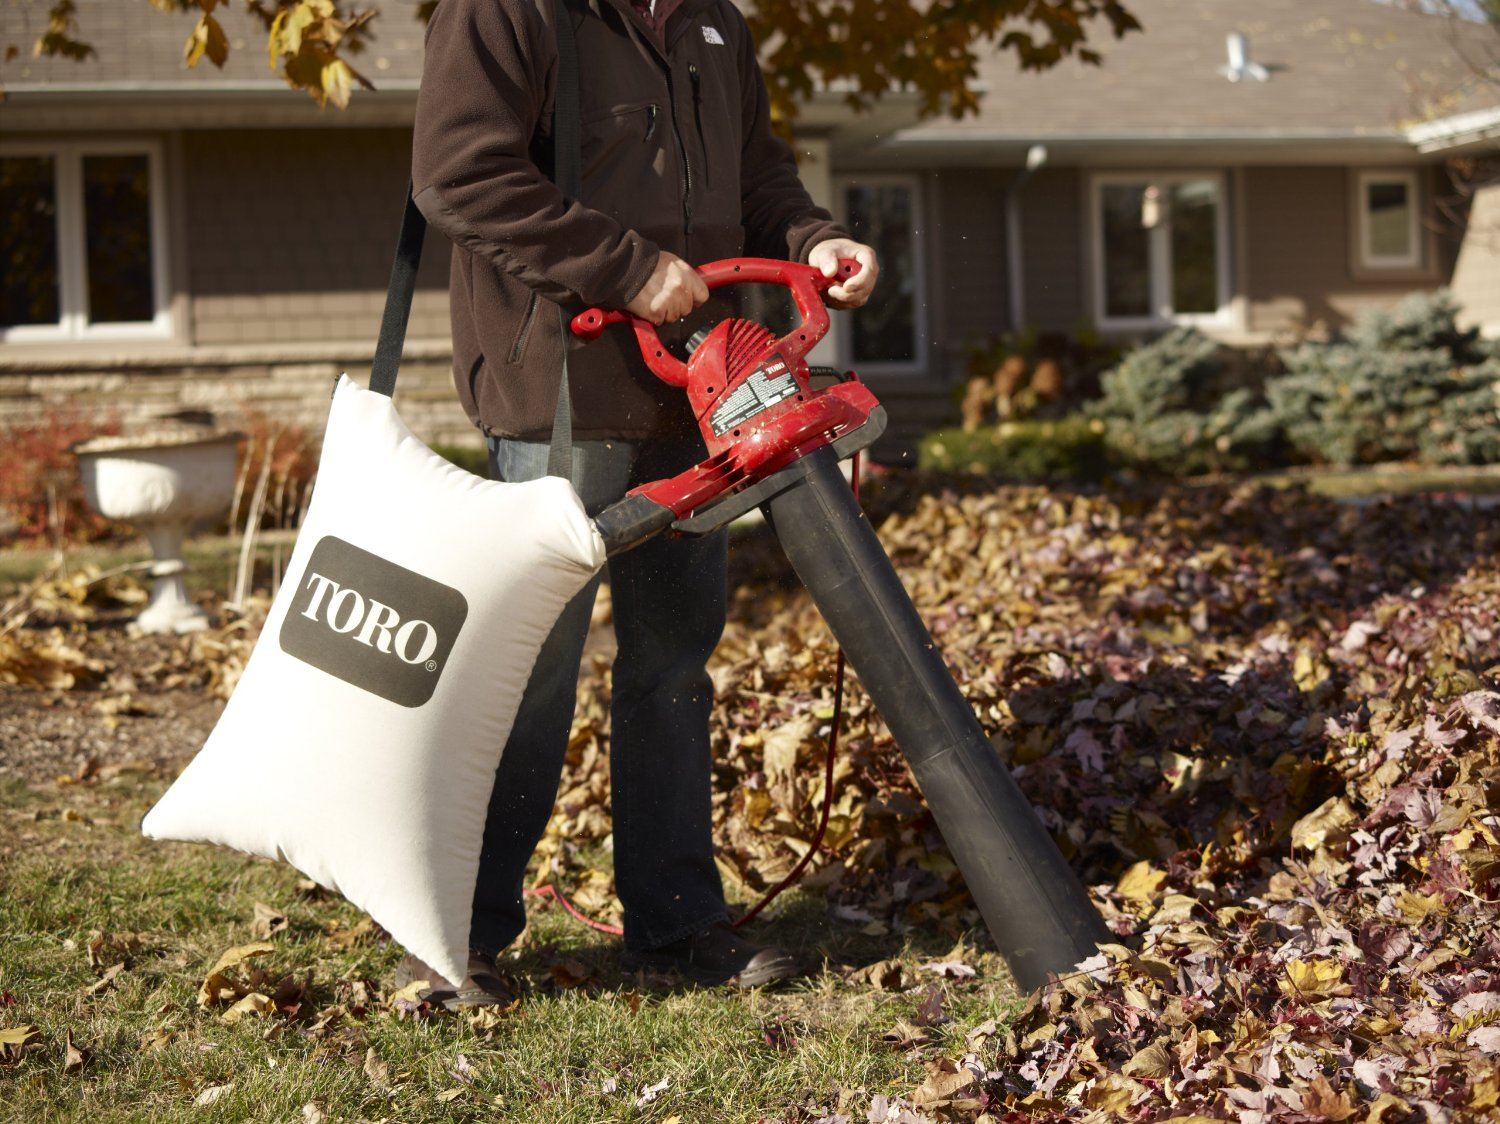 Toro 51609 Ultra Variable Speed Electric Vacuum With Metal